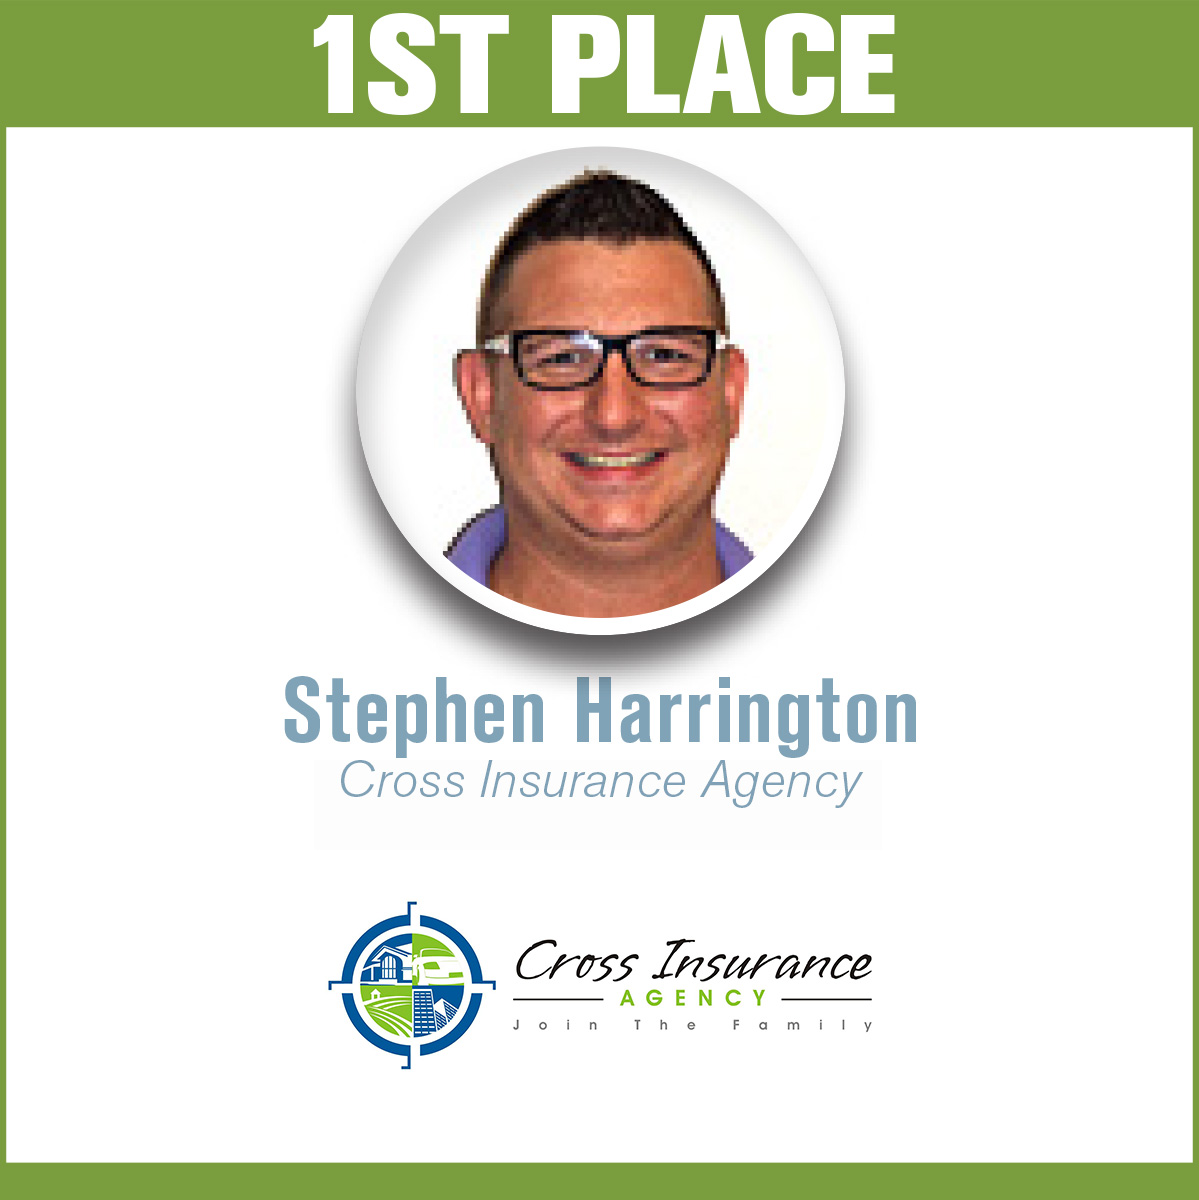 Stephen Harrington Cross Insurance